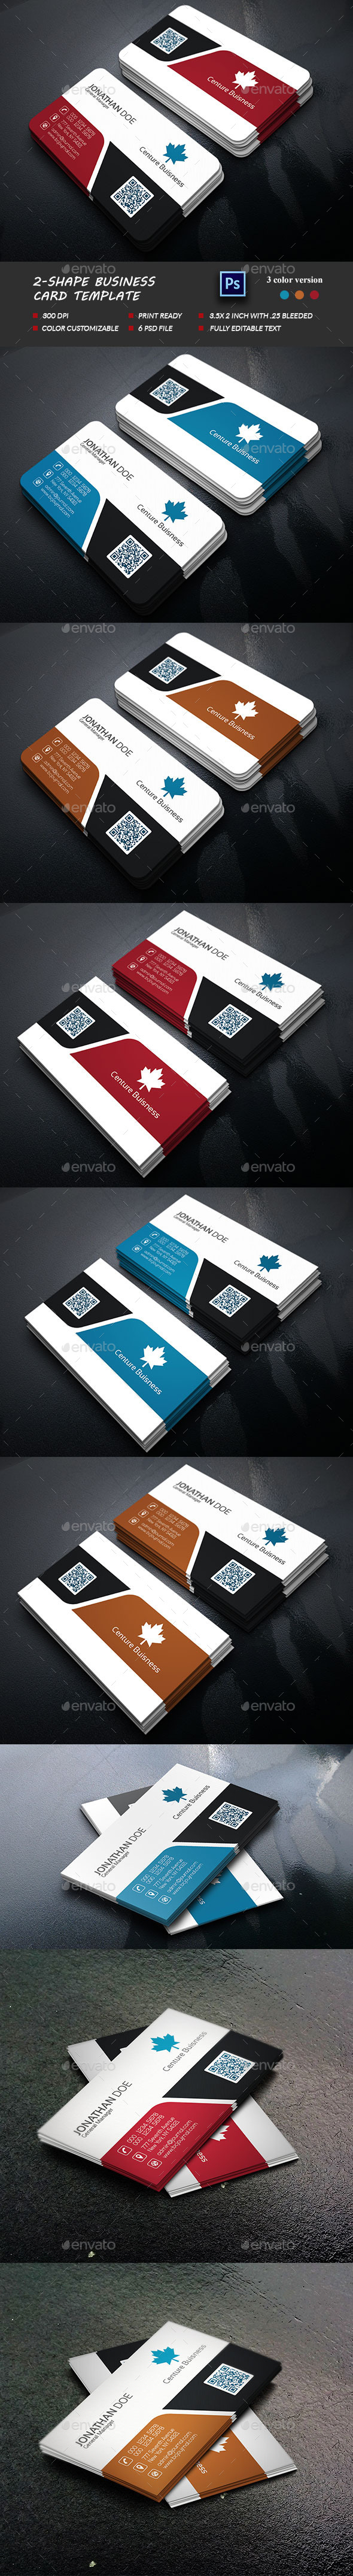 2-Shape Business Card Template - Business Cards Print Templates